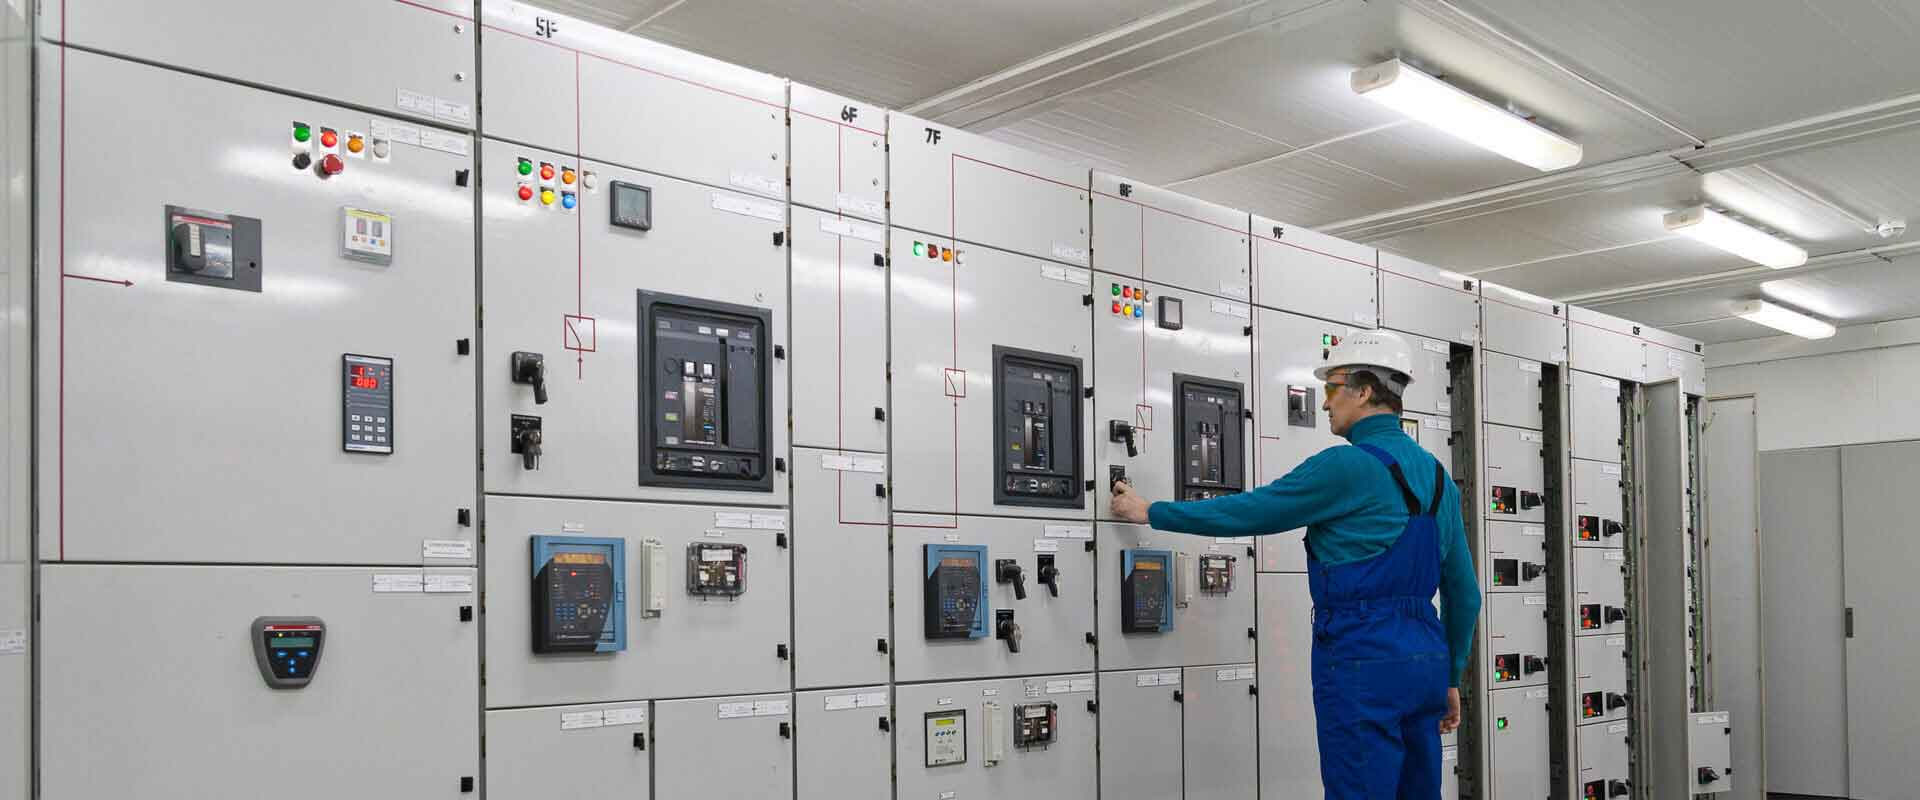 Power Distribution Panel Manufacturers In Saraswati Vihar